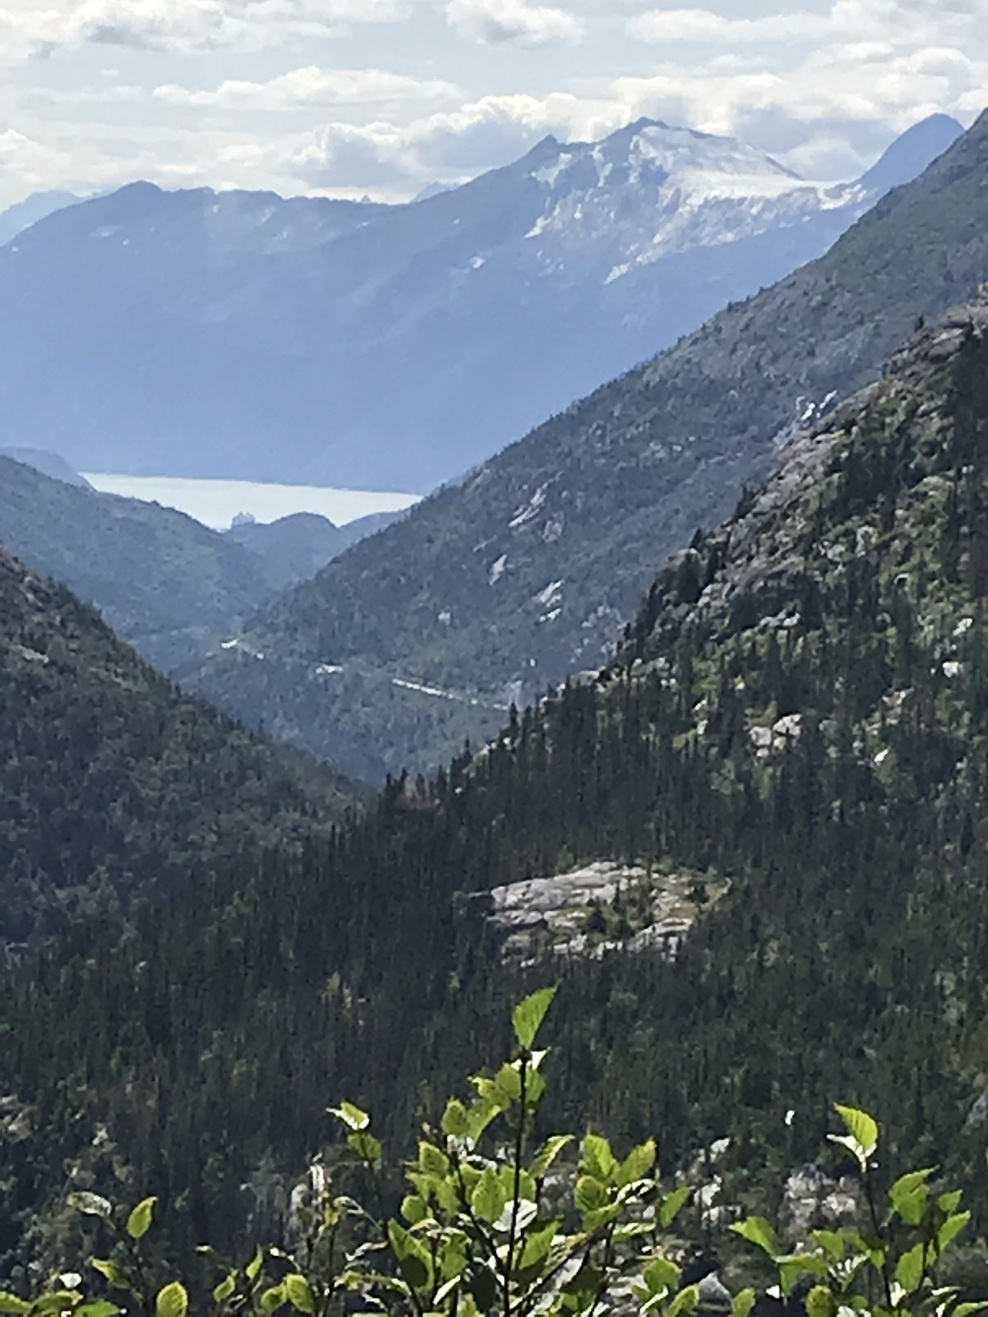 View from the White Pass train ride in Skagway.